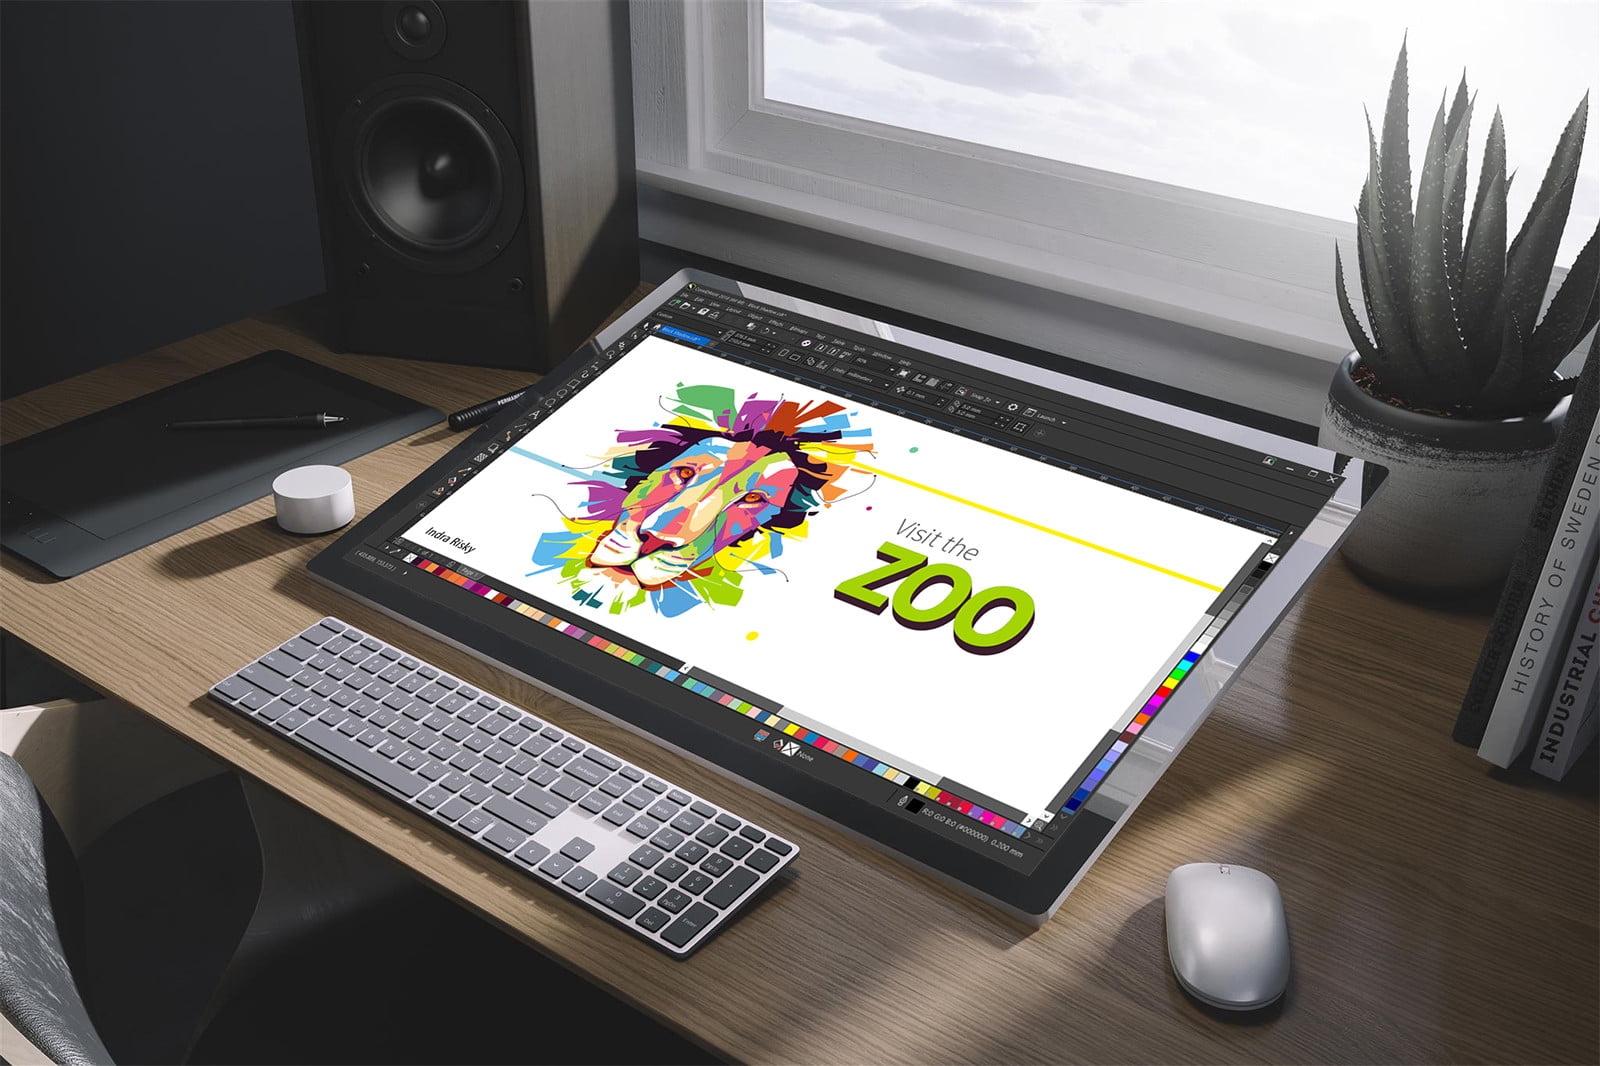 coreldraw 2018 speeds up workflows with new symmetry tool